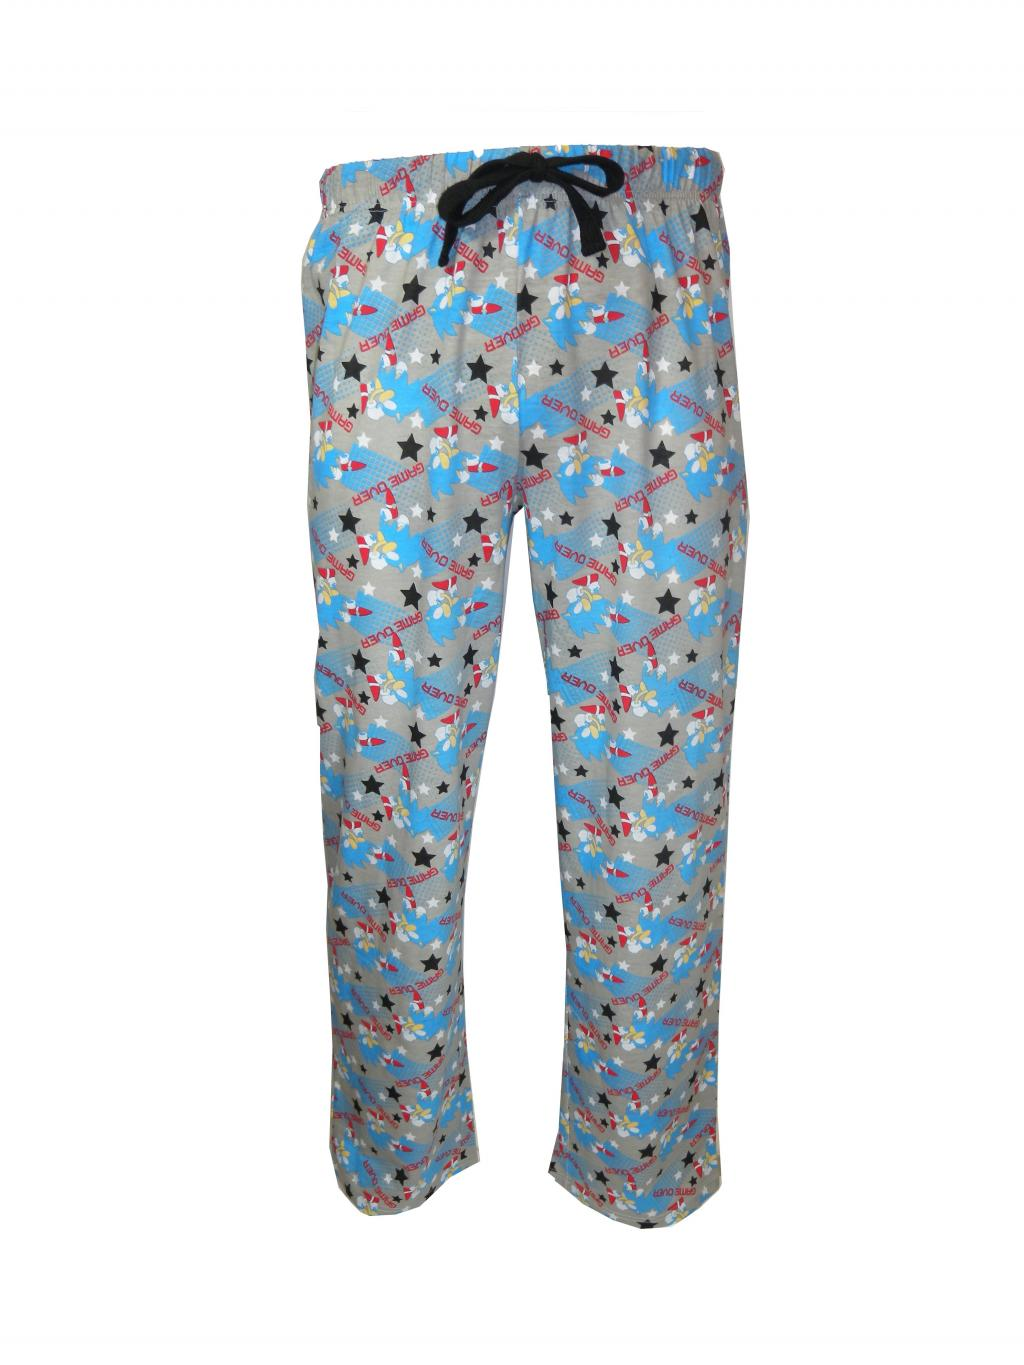 SONIC - Pantalon Pyjama - Game Over (XXL)